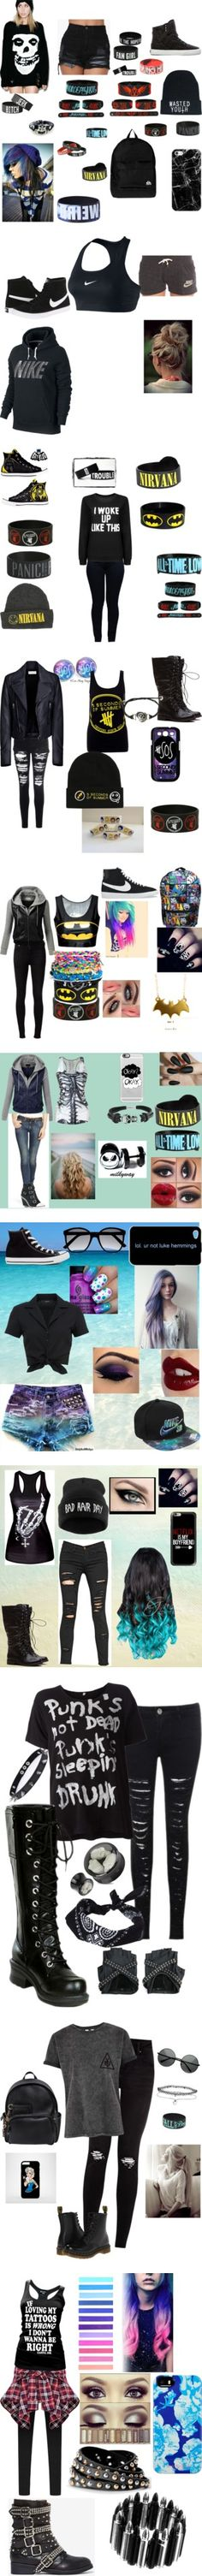 Story outfits by plzexusemyclumsiness on Polyvore featuring Iron Fist, Supra, Casetify, Quiksilver, Anastasia Beverly Hills, NIKE, Armani Jeans, Converse, Glamorous and Balenciaga